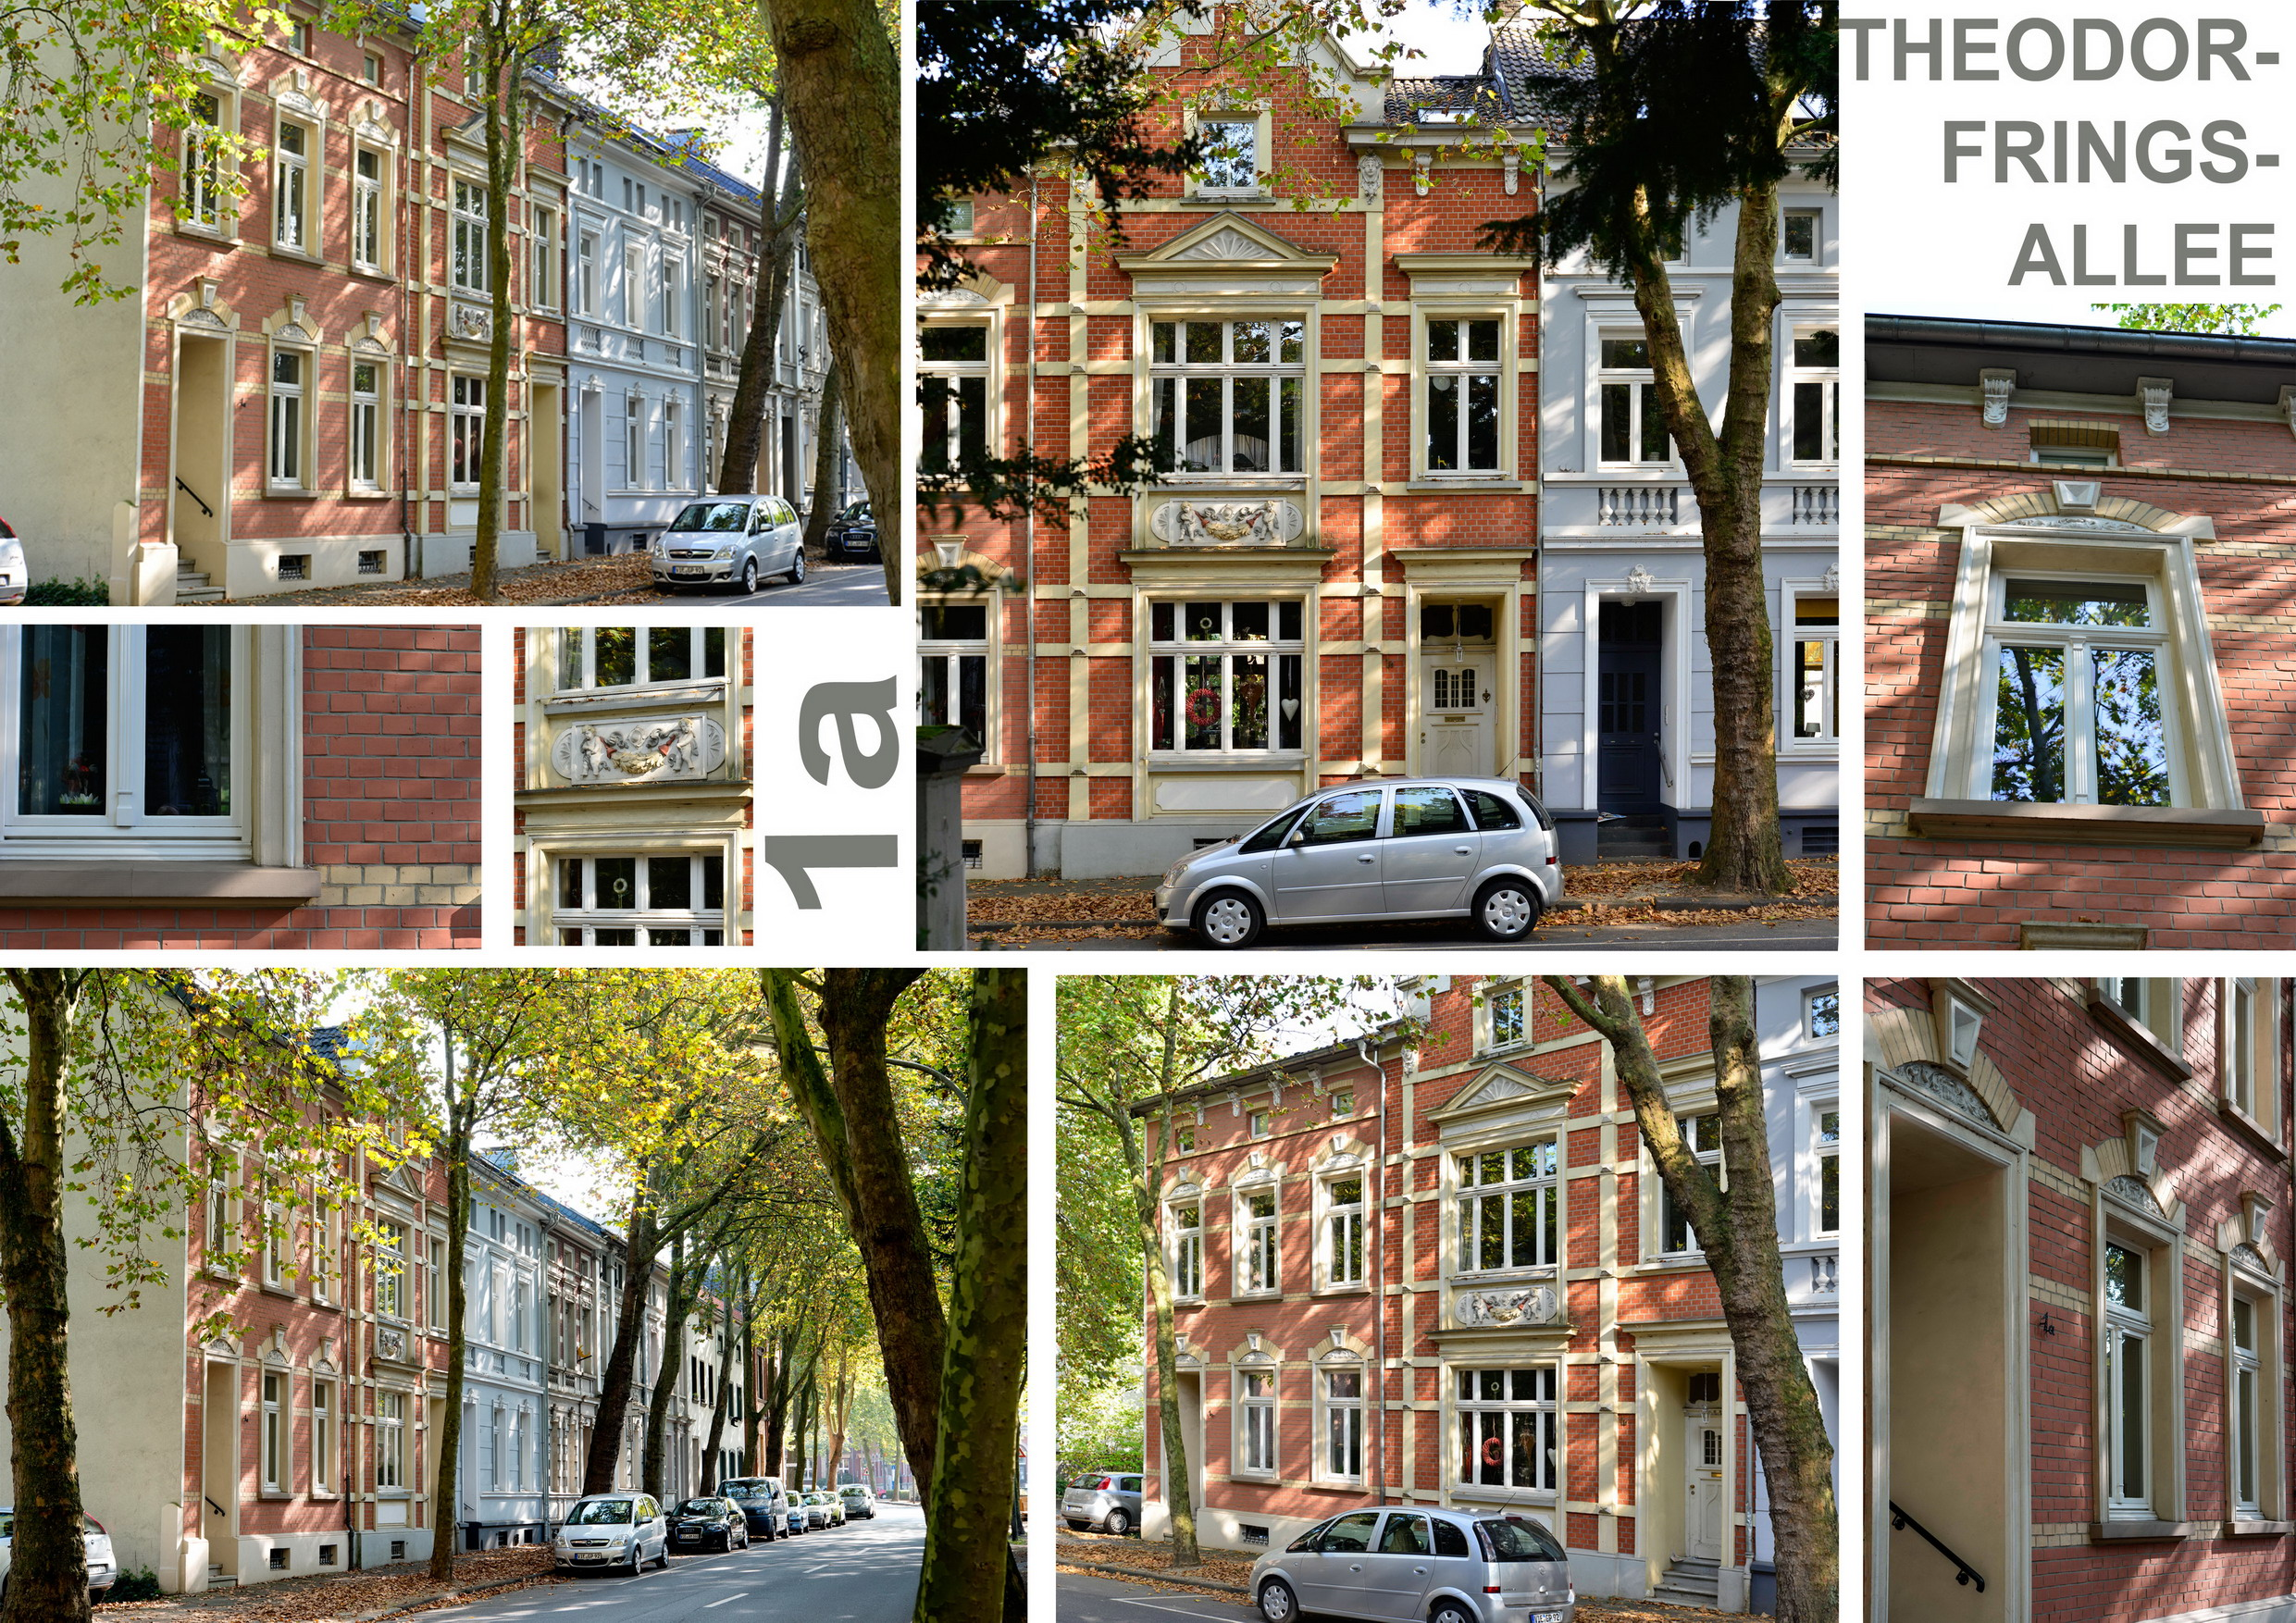 Theodor-Frings-Allee-1a